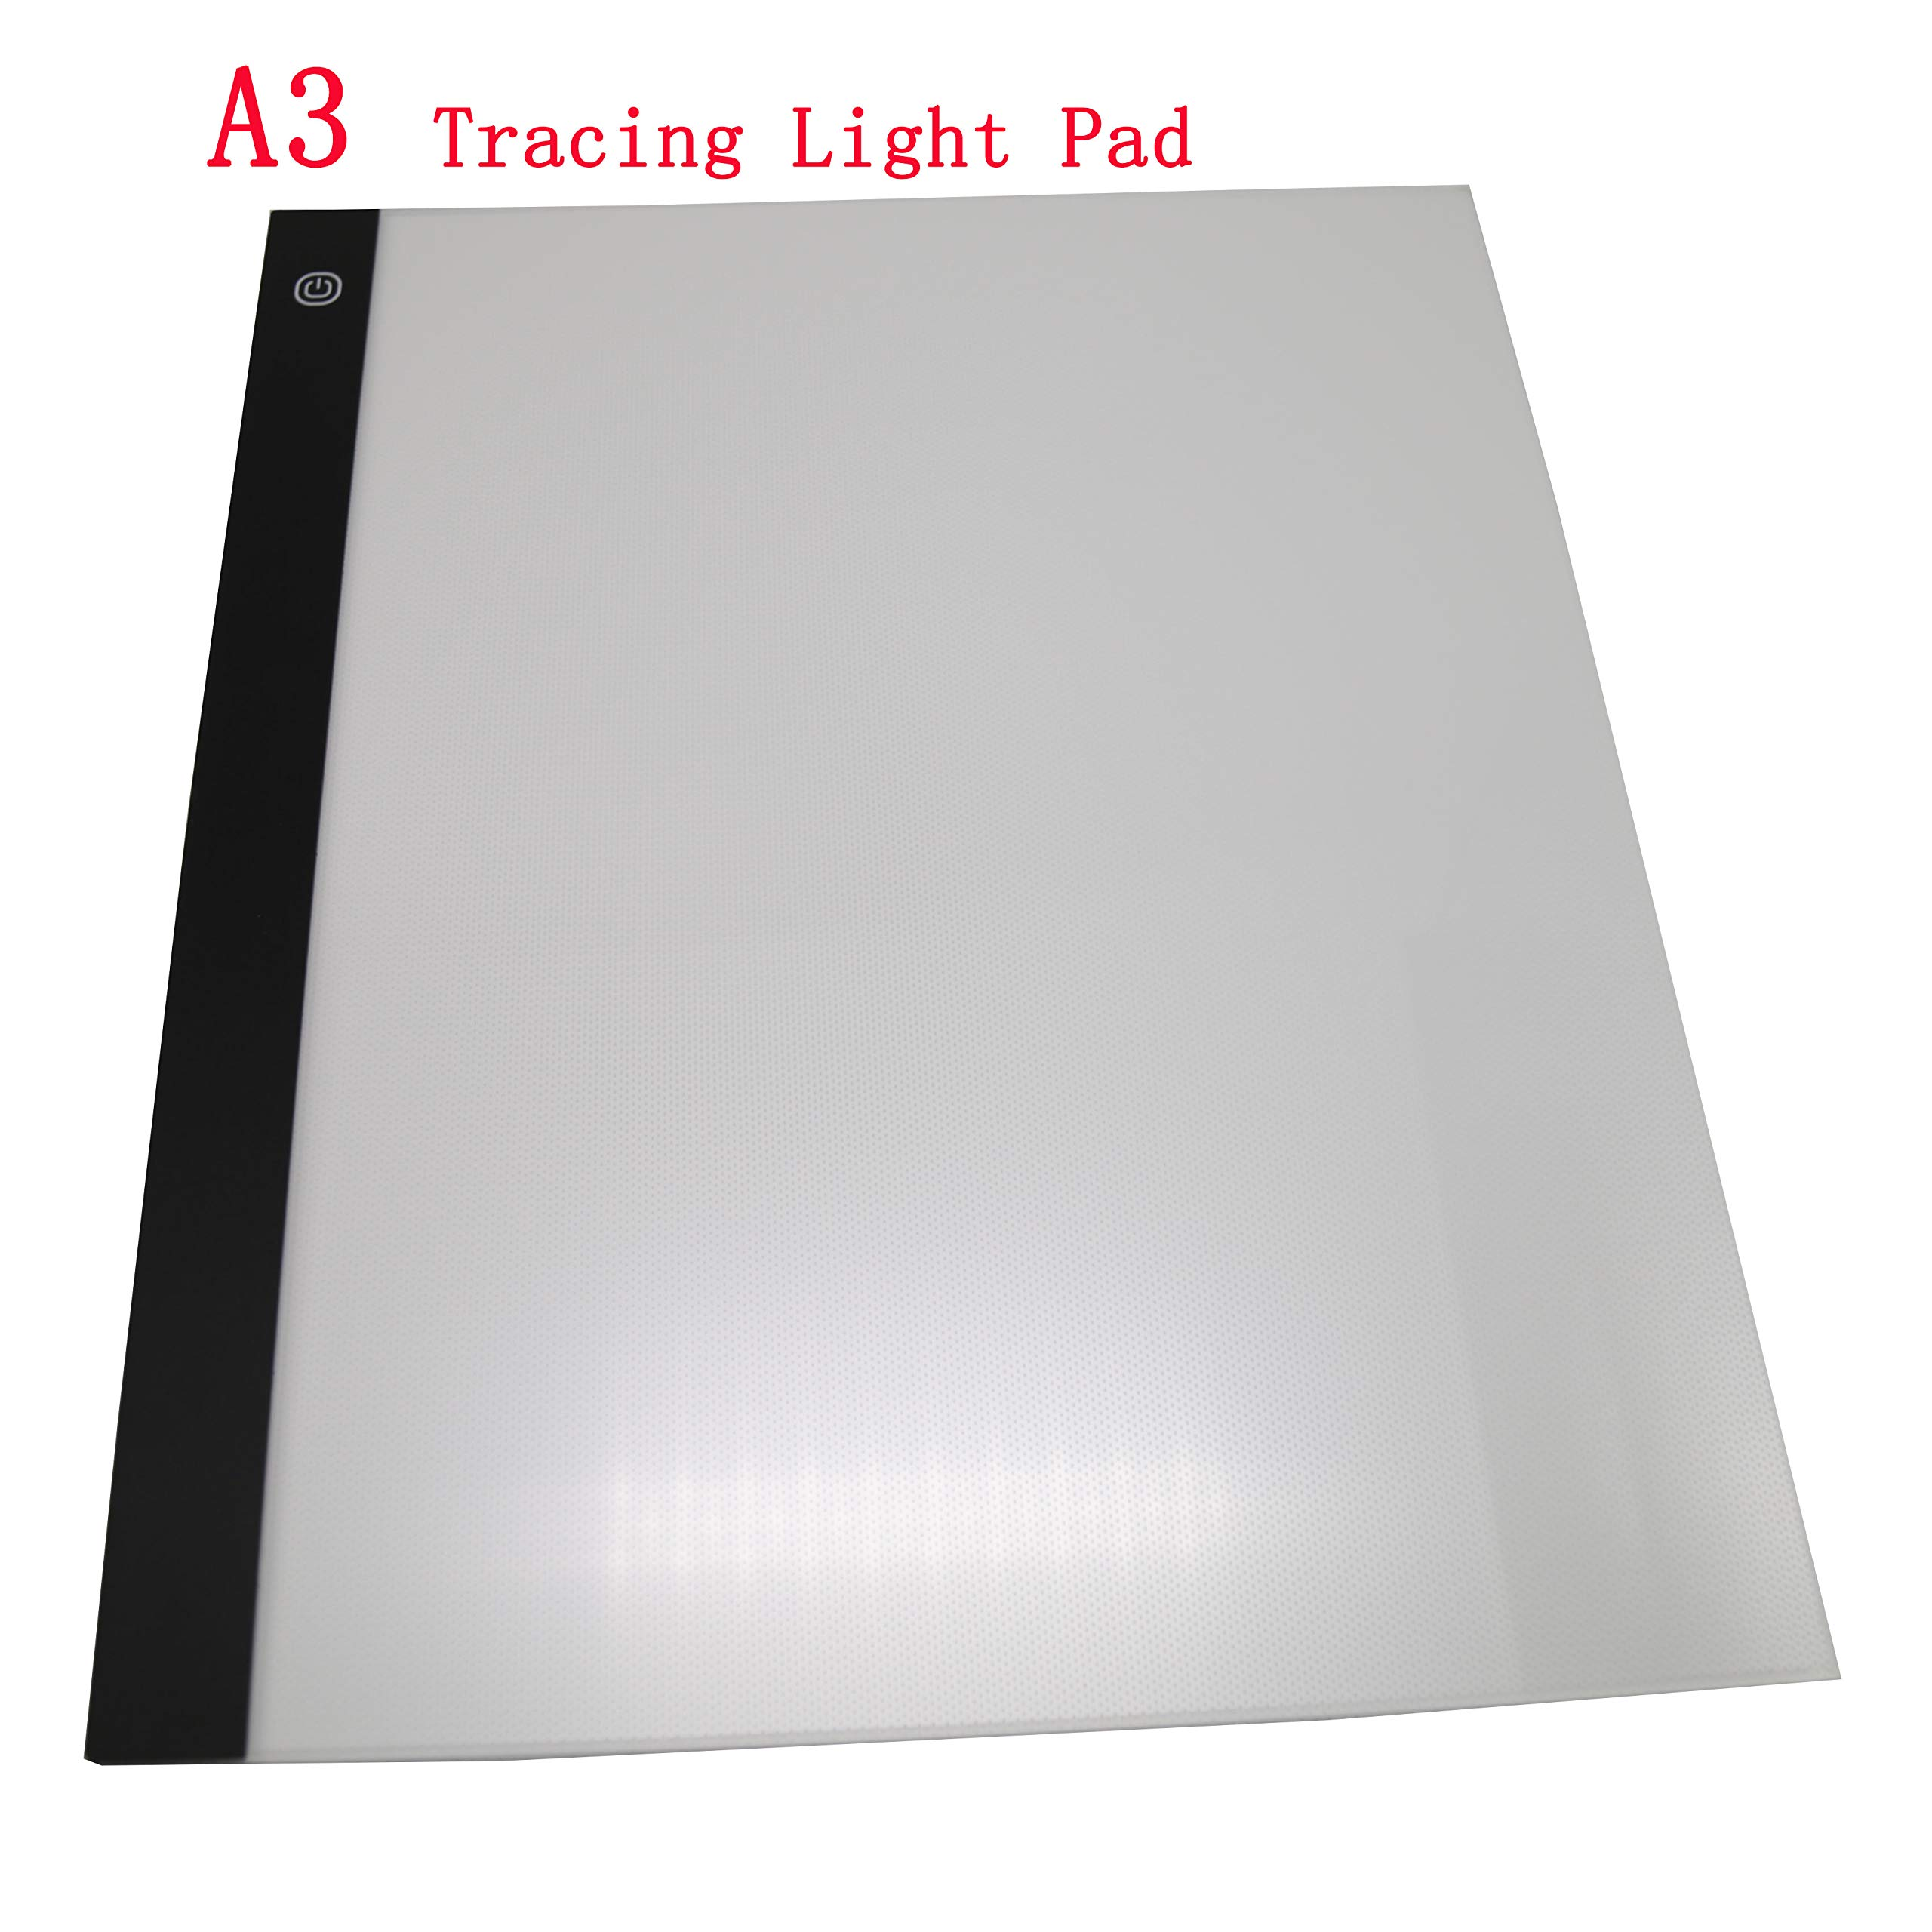 A3 Light Box, LED Artcraft Tracing Light Pad Ultra-Thin USB Power Cable Dimmable Brightness Tatoo Pad Animation, Sketching, Designing, Stencilling X-ray Viewing